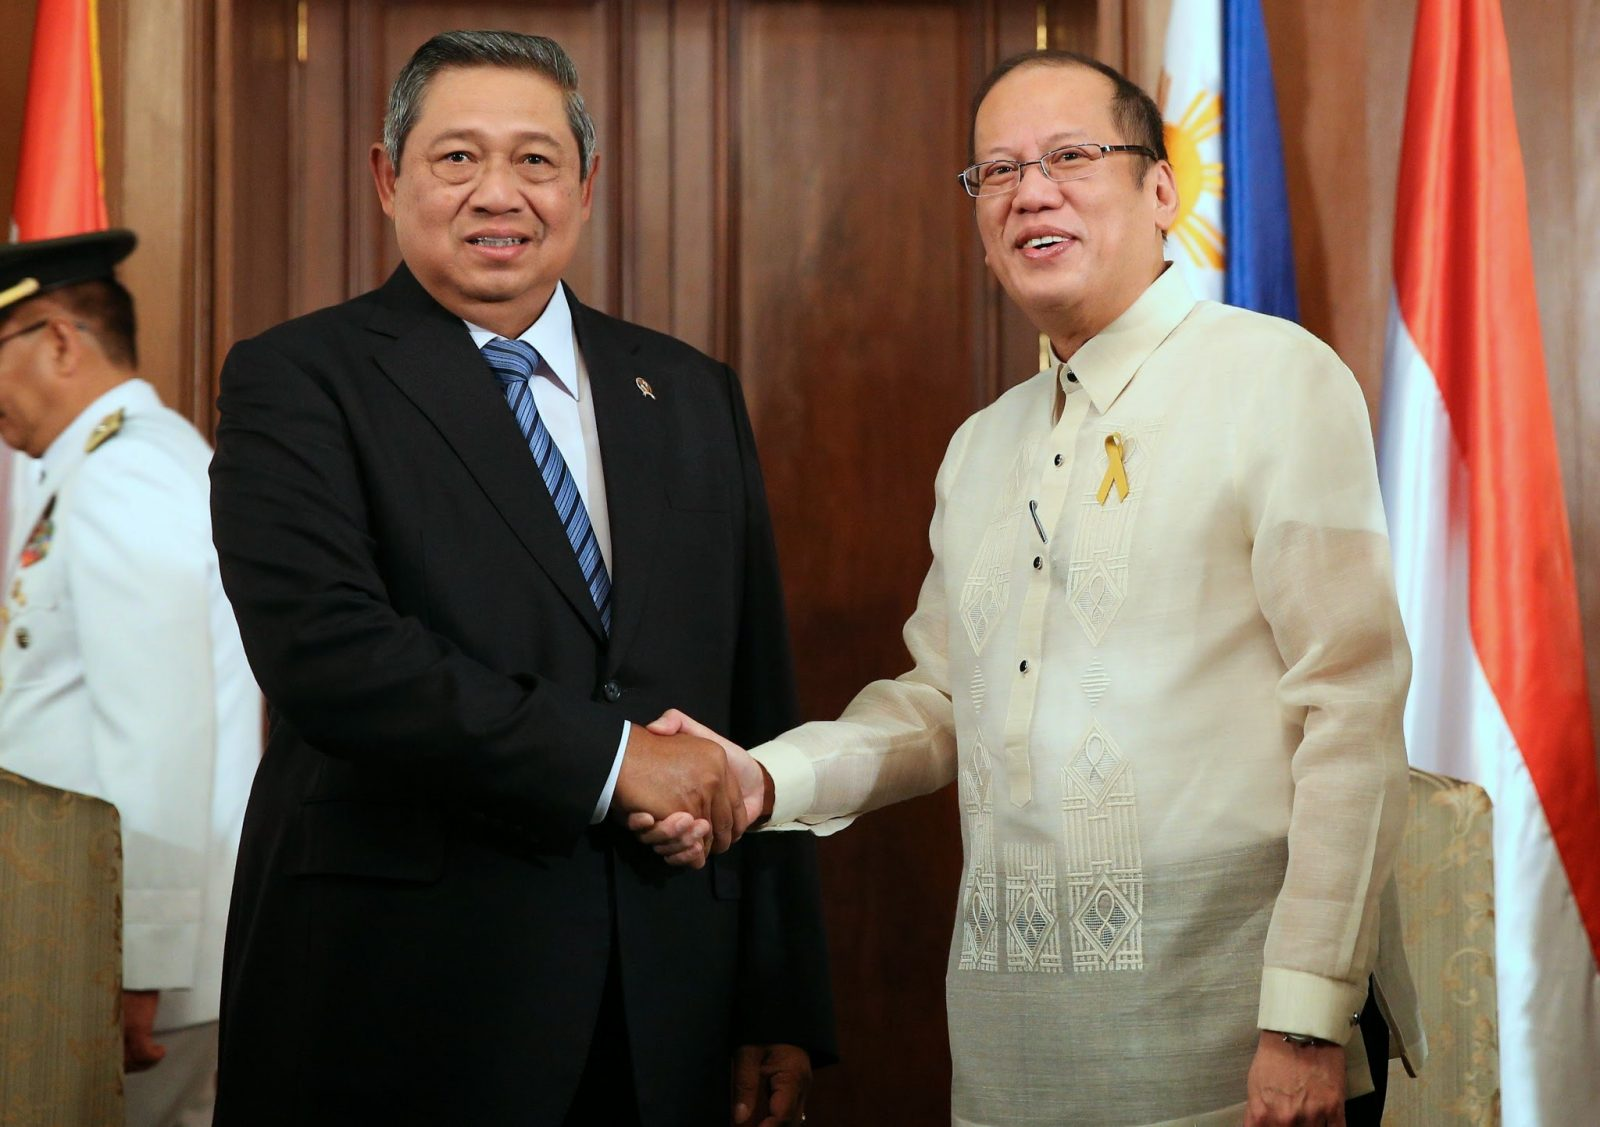 President Benigno S. Aquino III greets His Excellency Susilo Bambang Yudhoyono, President of the Republic of Indonesia, at the Music Room of the Malacañan Palace on Friday (May 23). (Photo by Ryan Lim / Malacañang Photo Bureau)